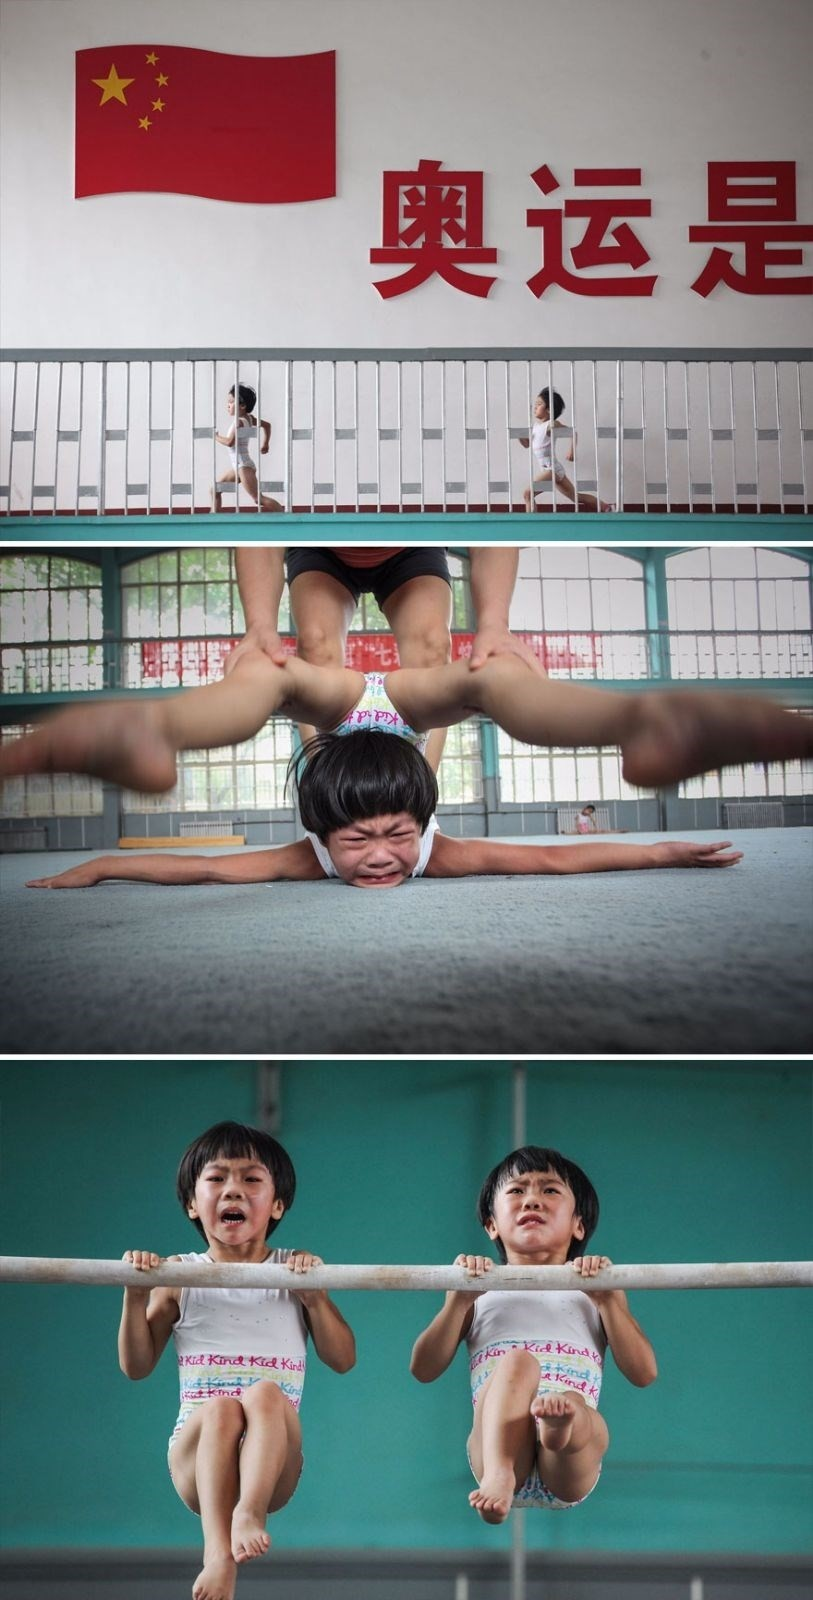 The Twins' Gymnastics Dream, China - 3rd place, Story-Telling